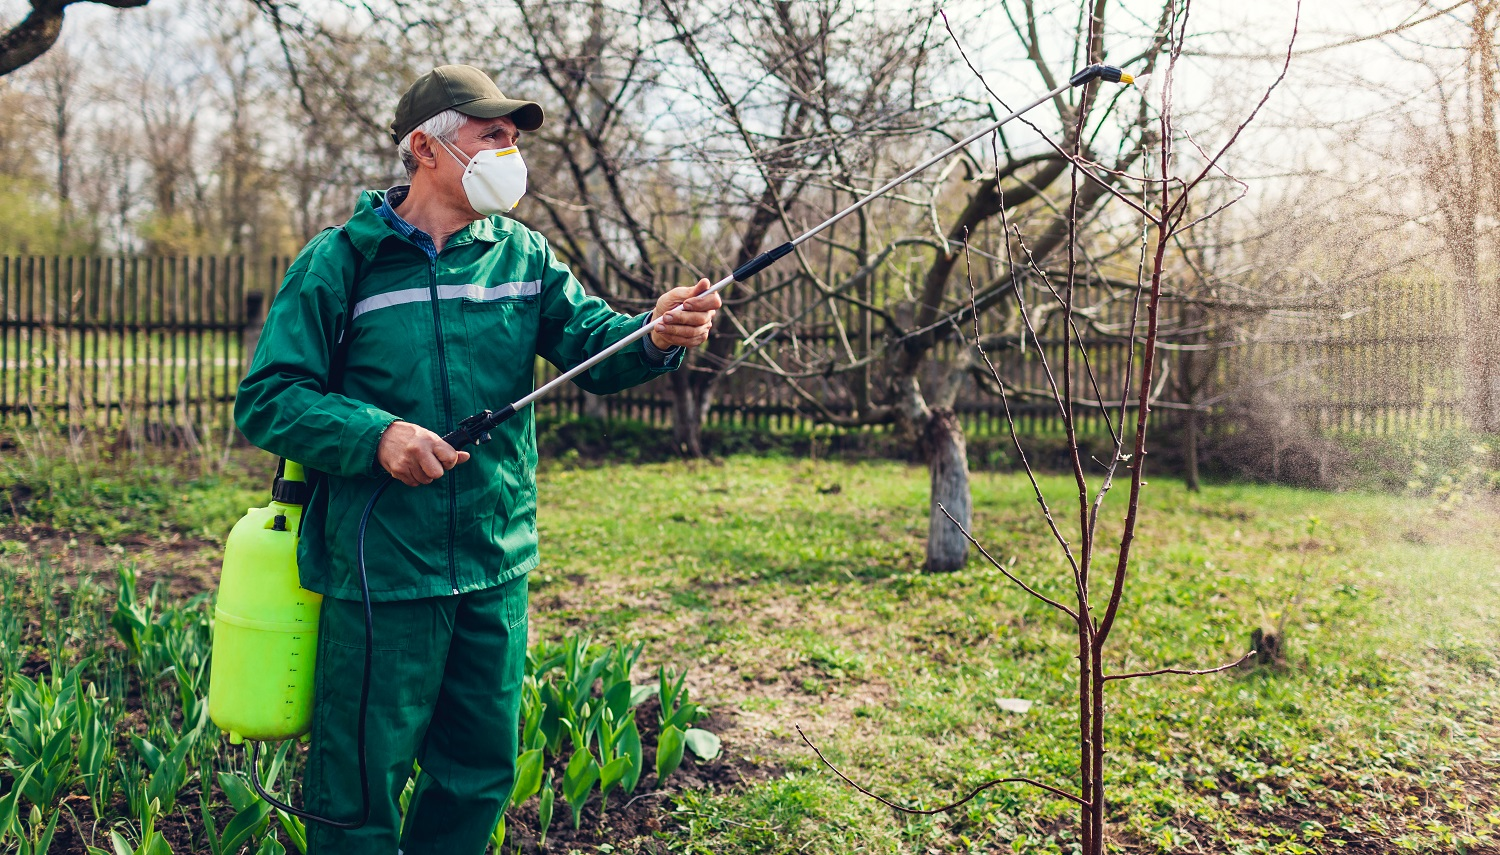 Senior farmer man spraying tree with manual pesticide sprayer against insects in spring garden wearing mask. Agriculture and gardening concept